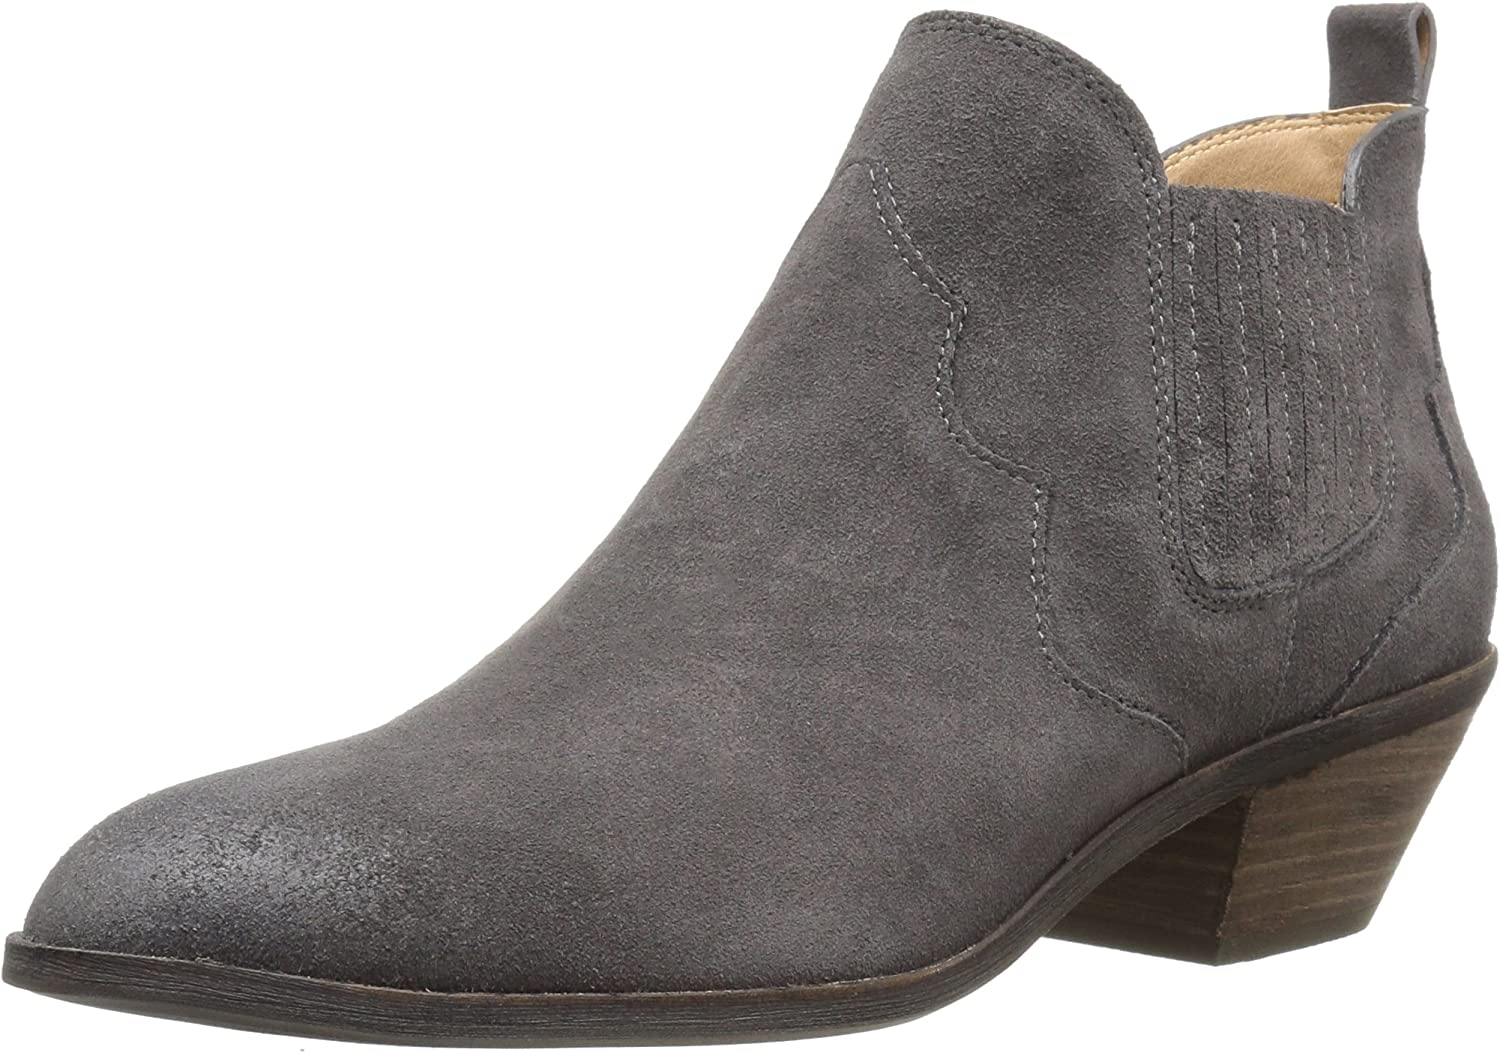 GH BASS AND CO Women's, Naomi Ankle Boots Charcoal 8 M